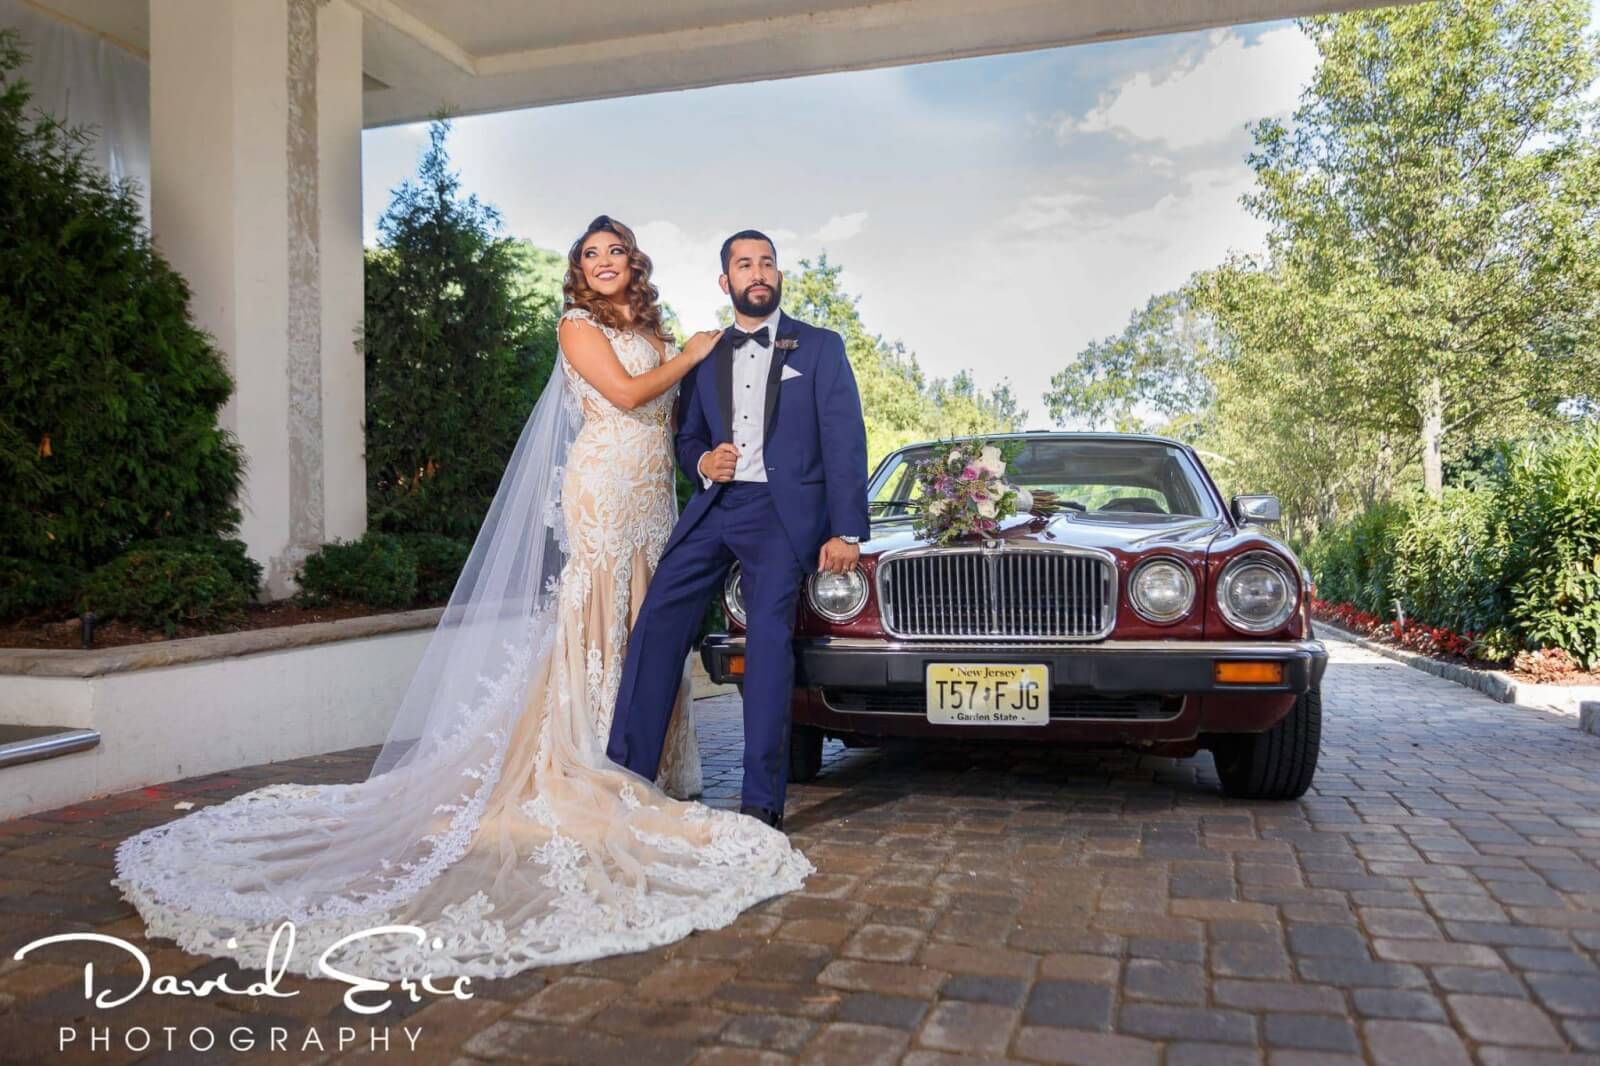 Wedding Venues New Jersey The Tides Estates bride and groom on jaguar in front of the venue